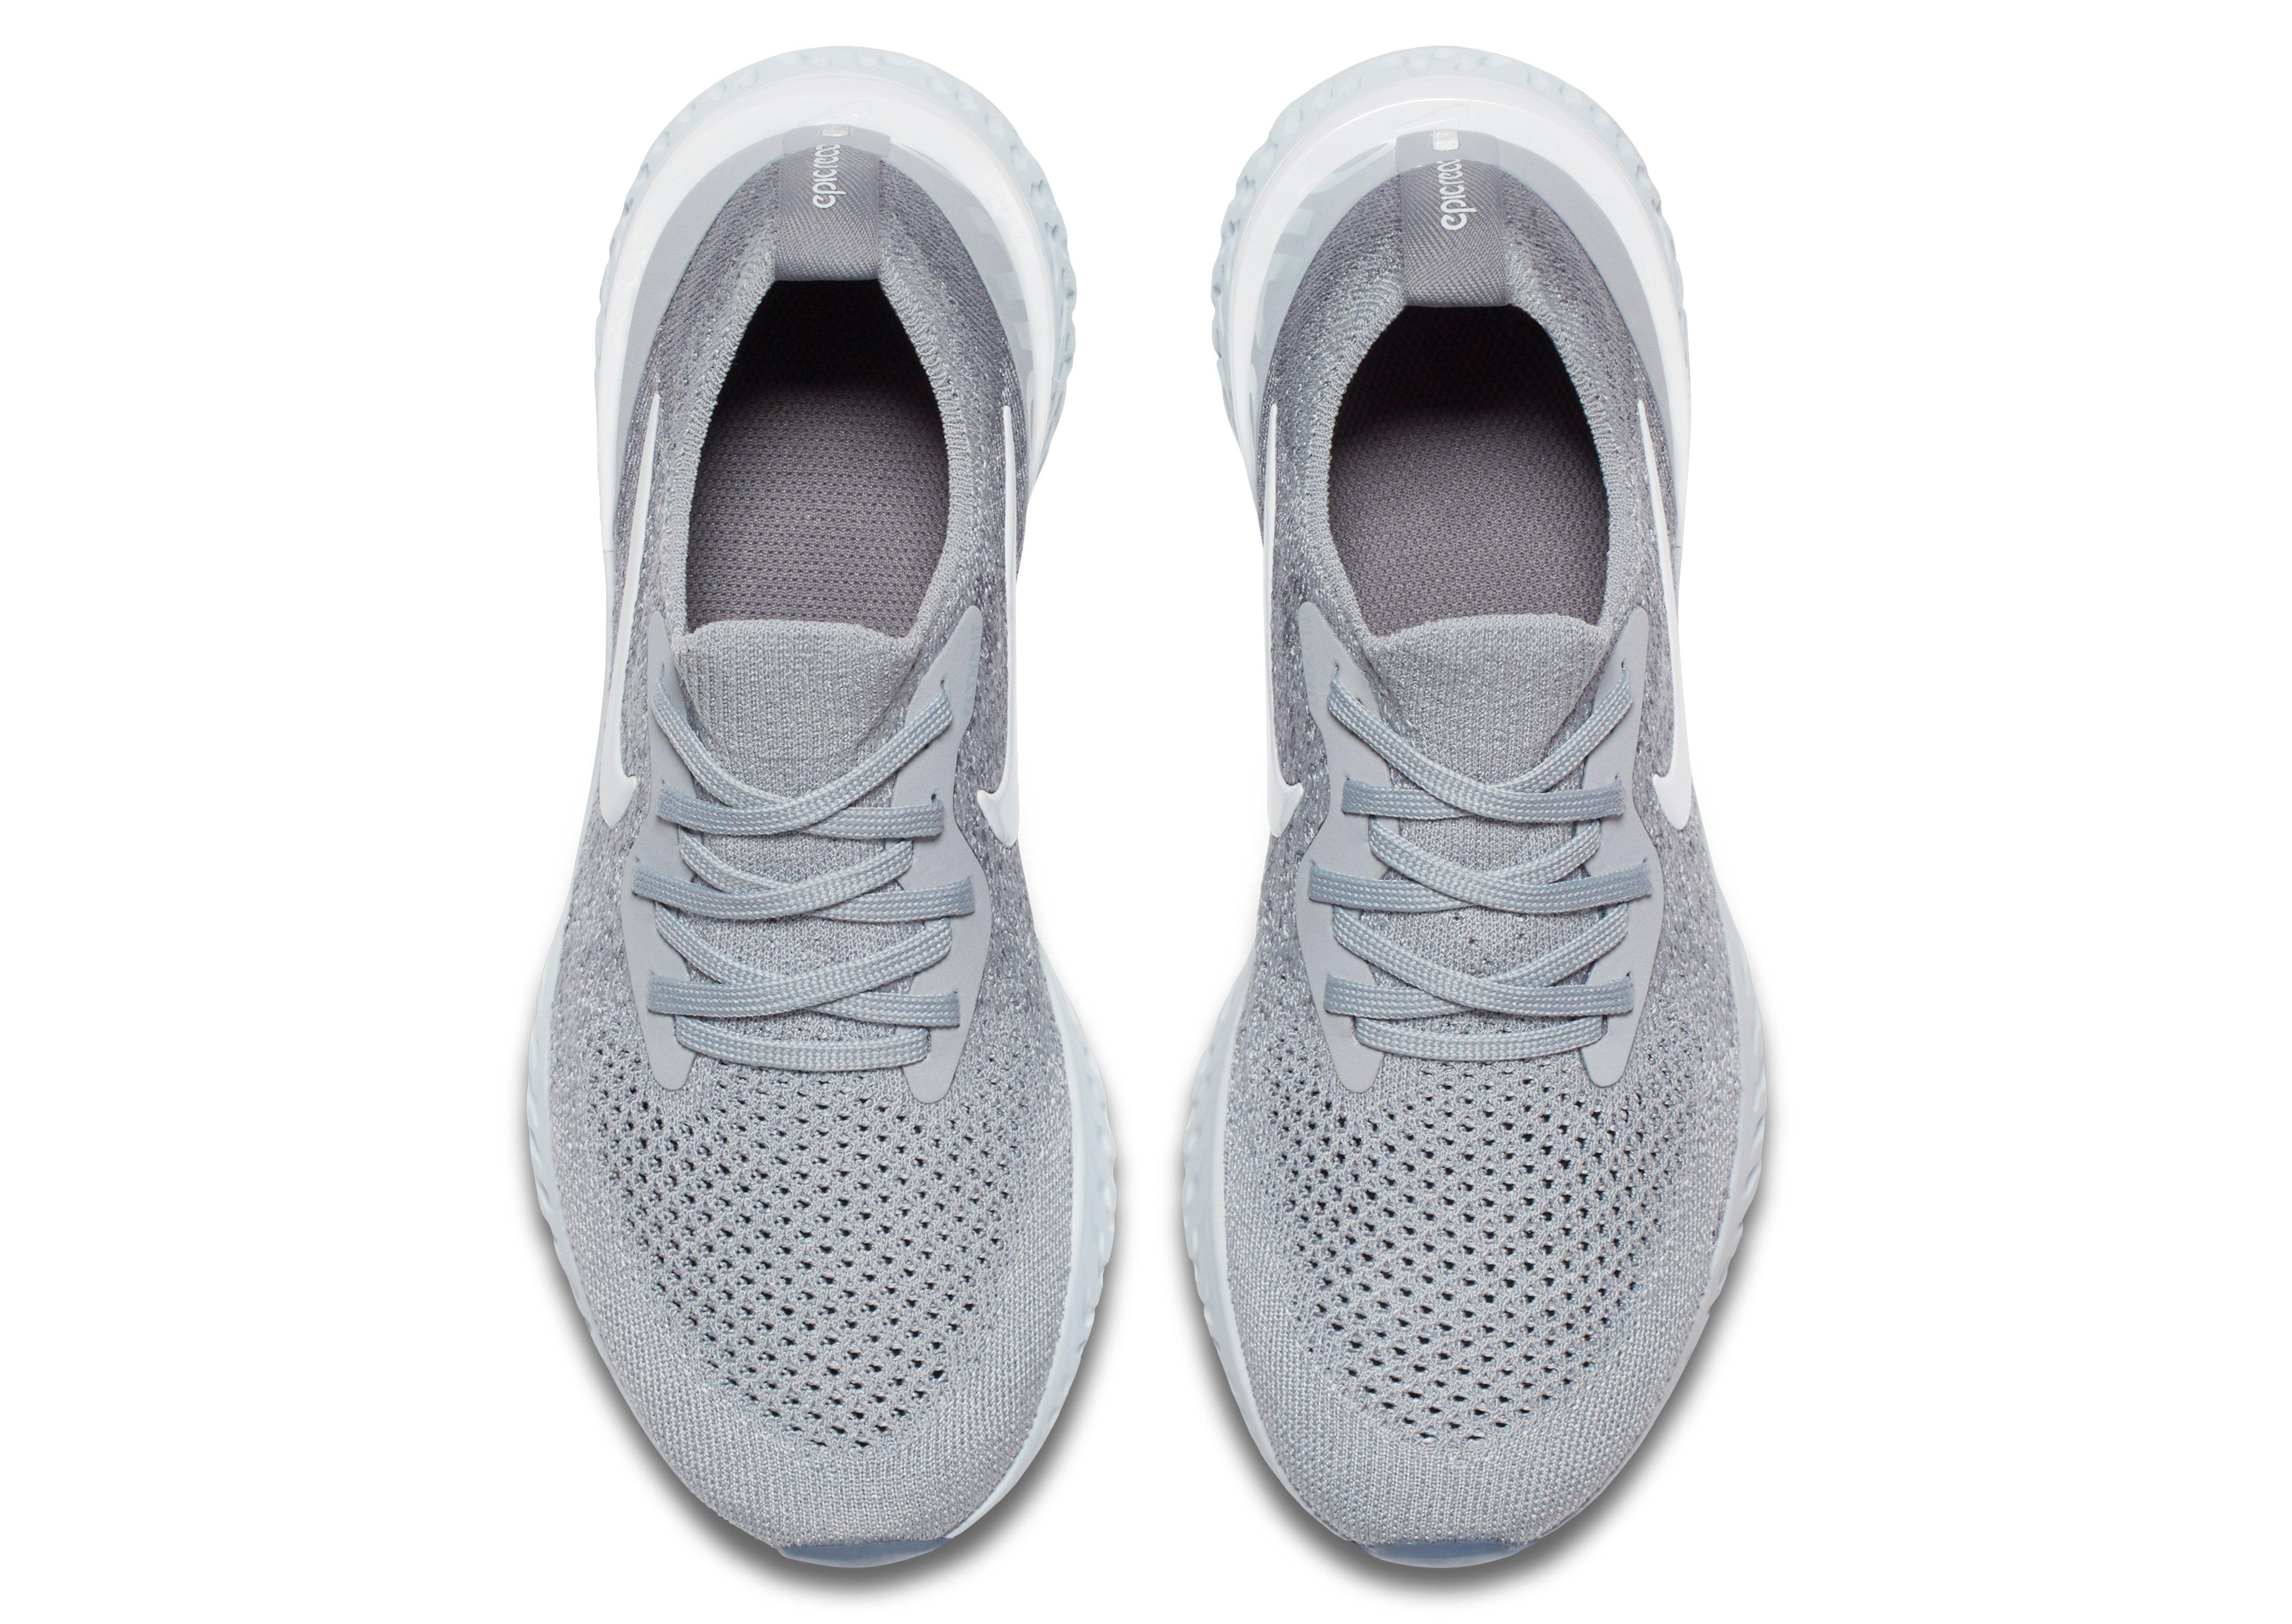 4cae58b5bb13 Compare save today! com are very endearing and will surely make your kid  smile while taking those cute little steps. The nike roshe two releases at  global ...